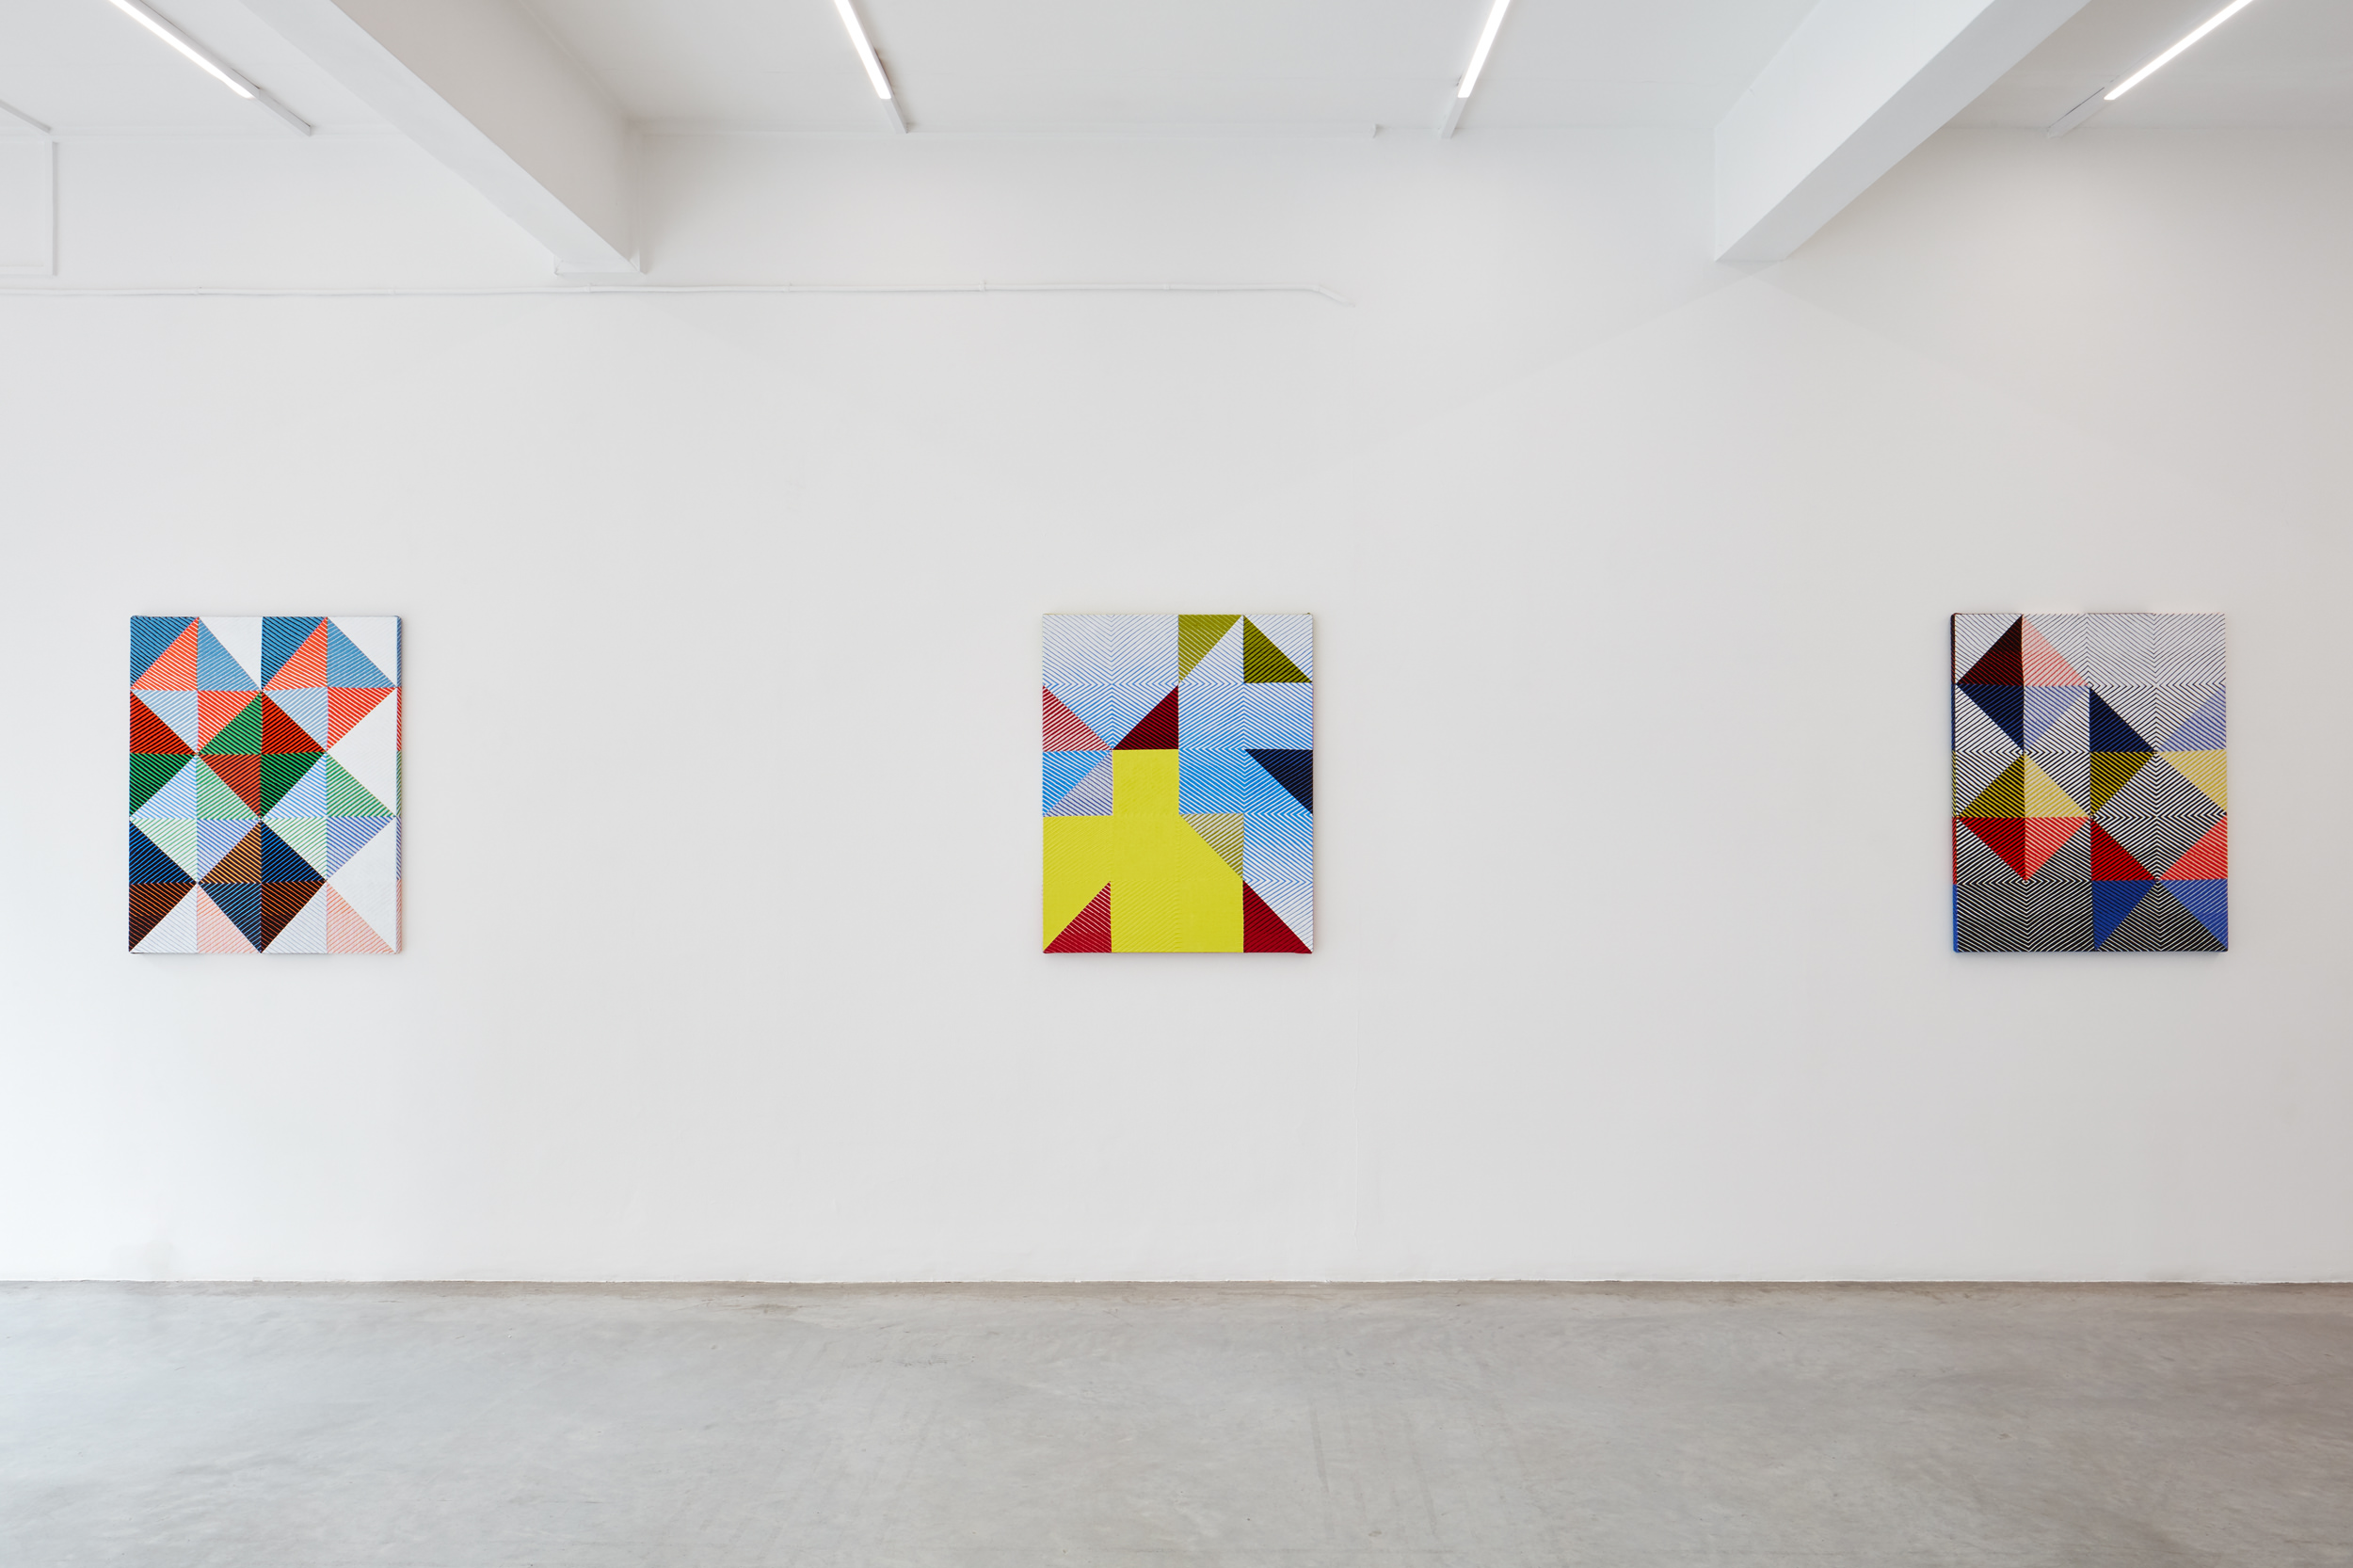 Samantha Bittman, Shift, Installation view 1